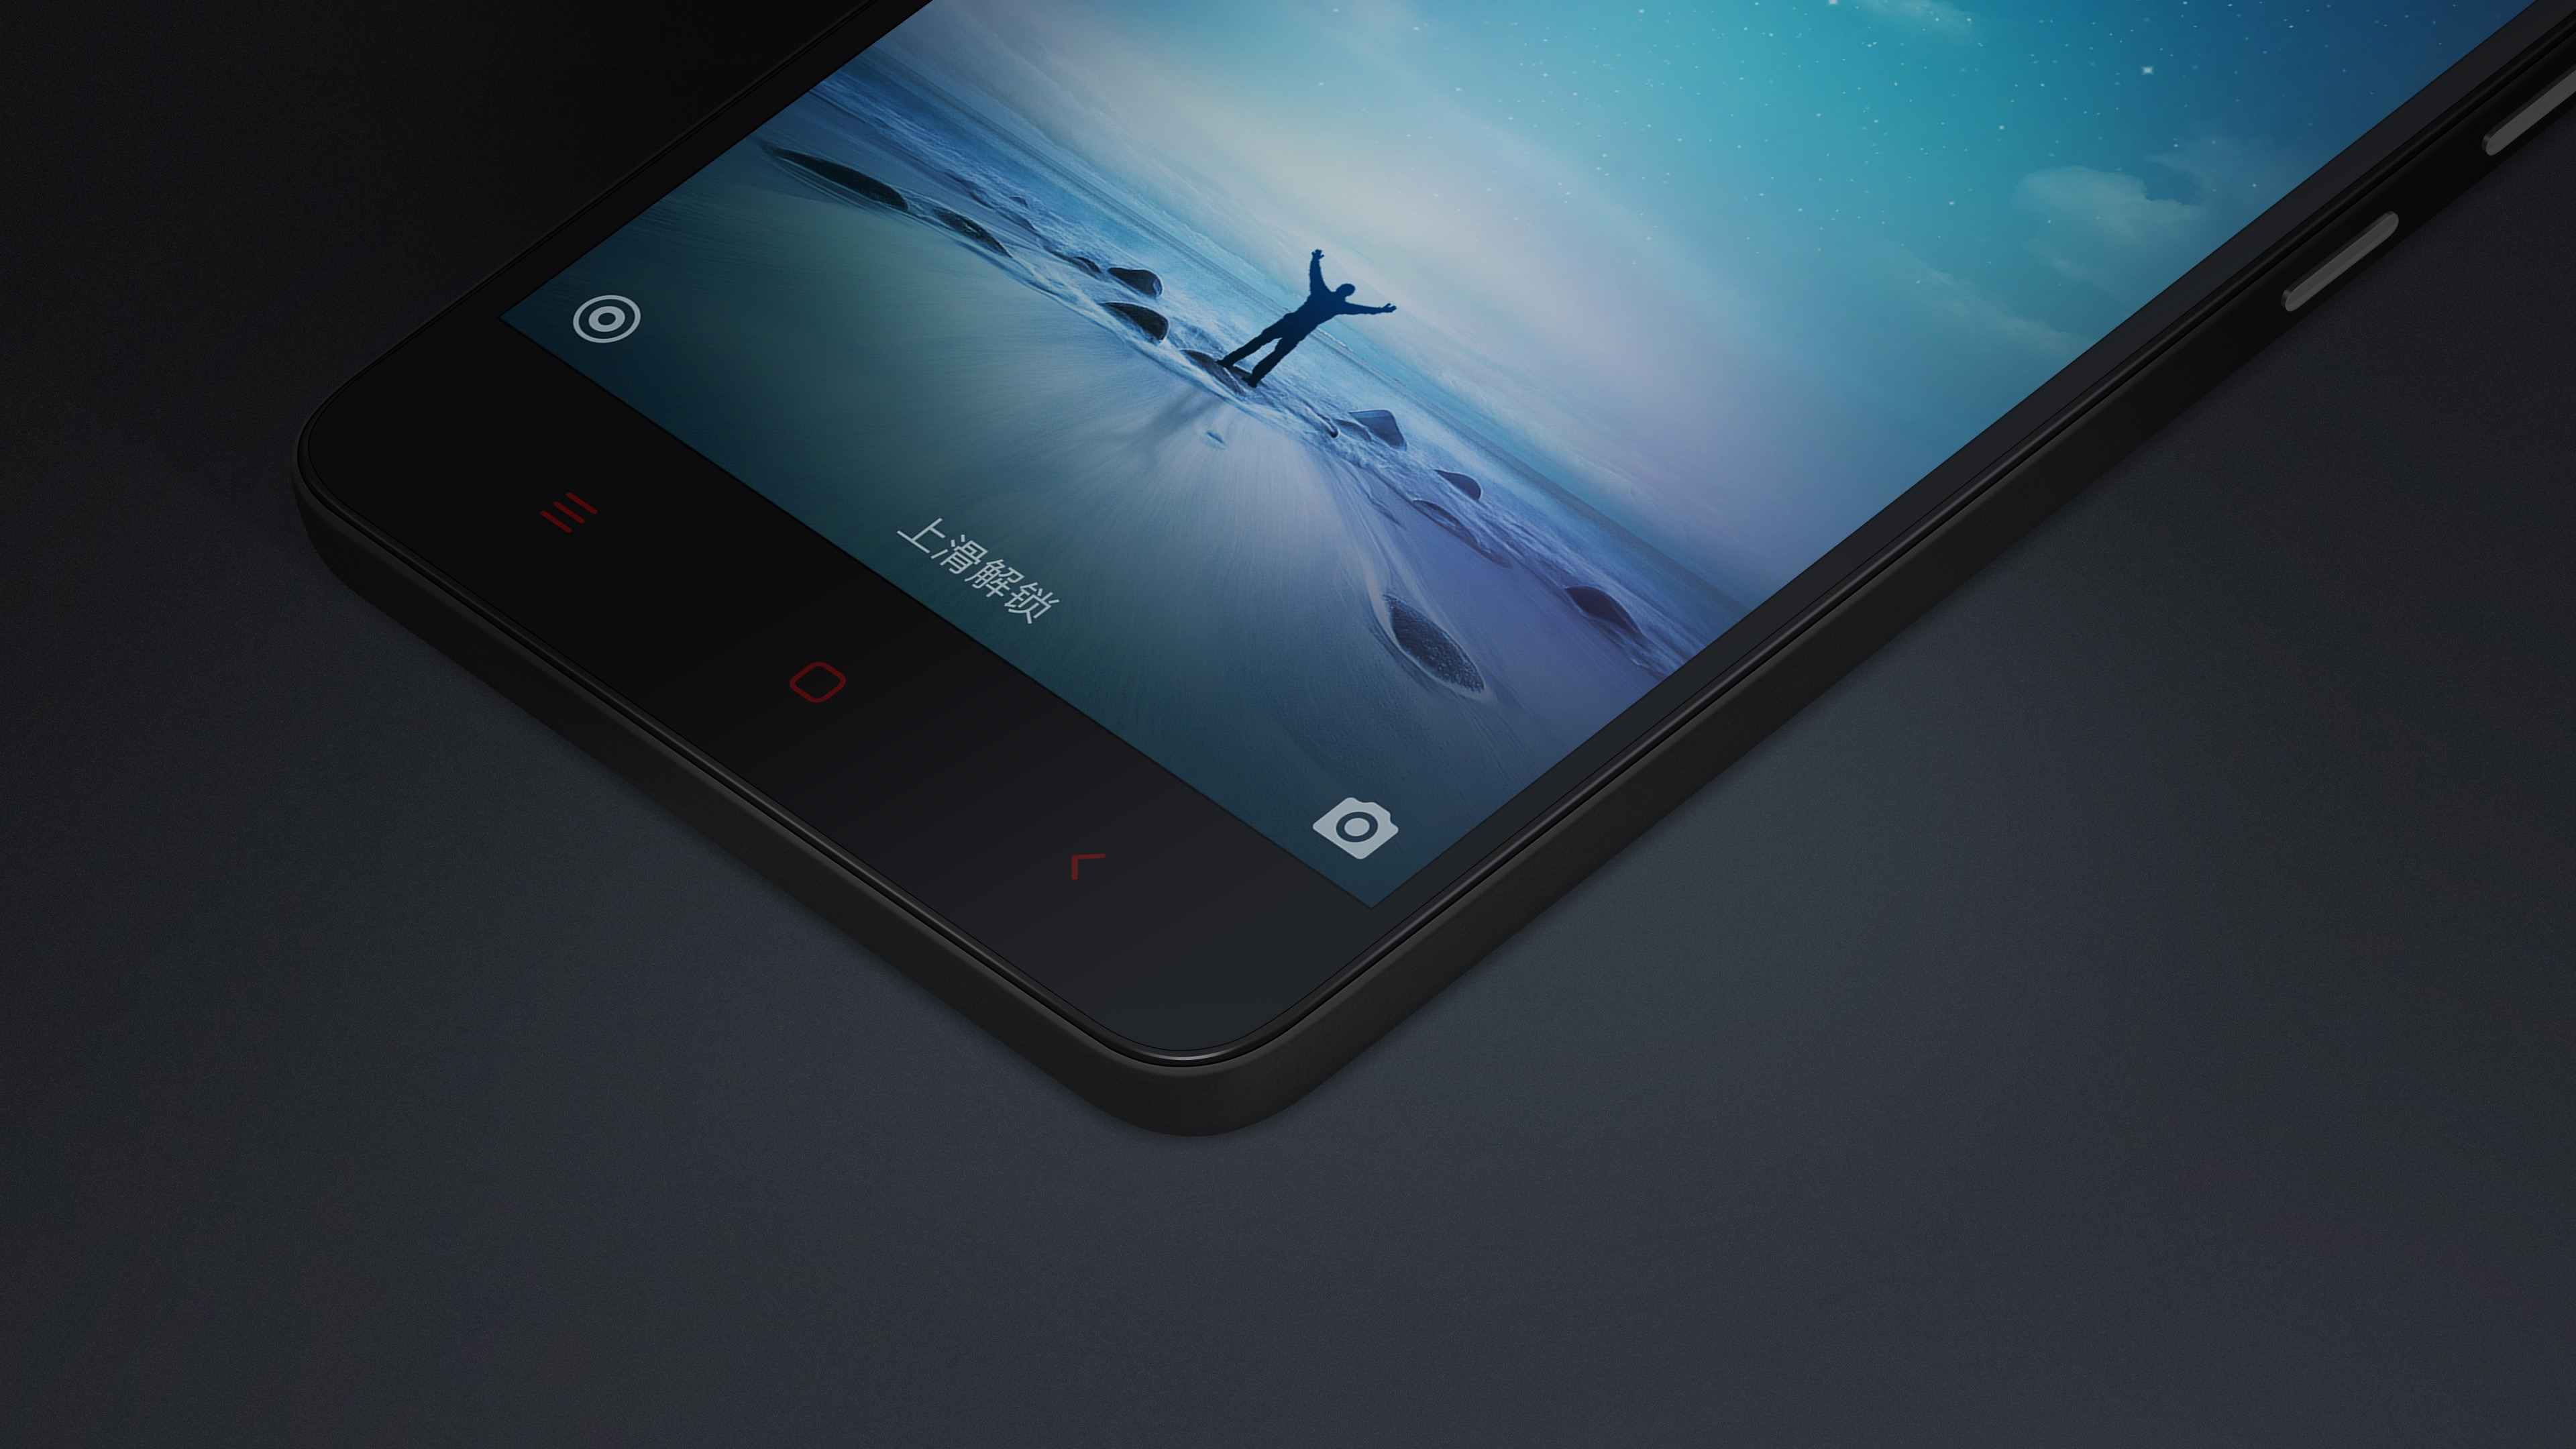 Xiaomi-Redmi-Note-2-official-images-1